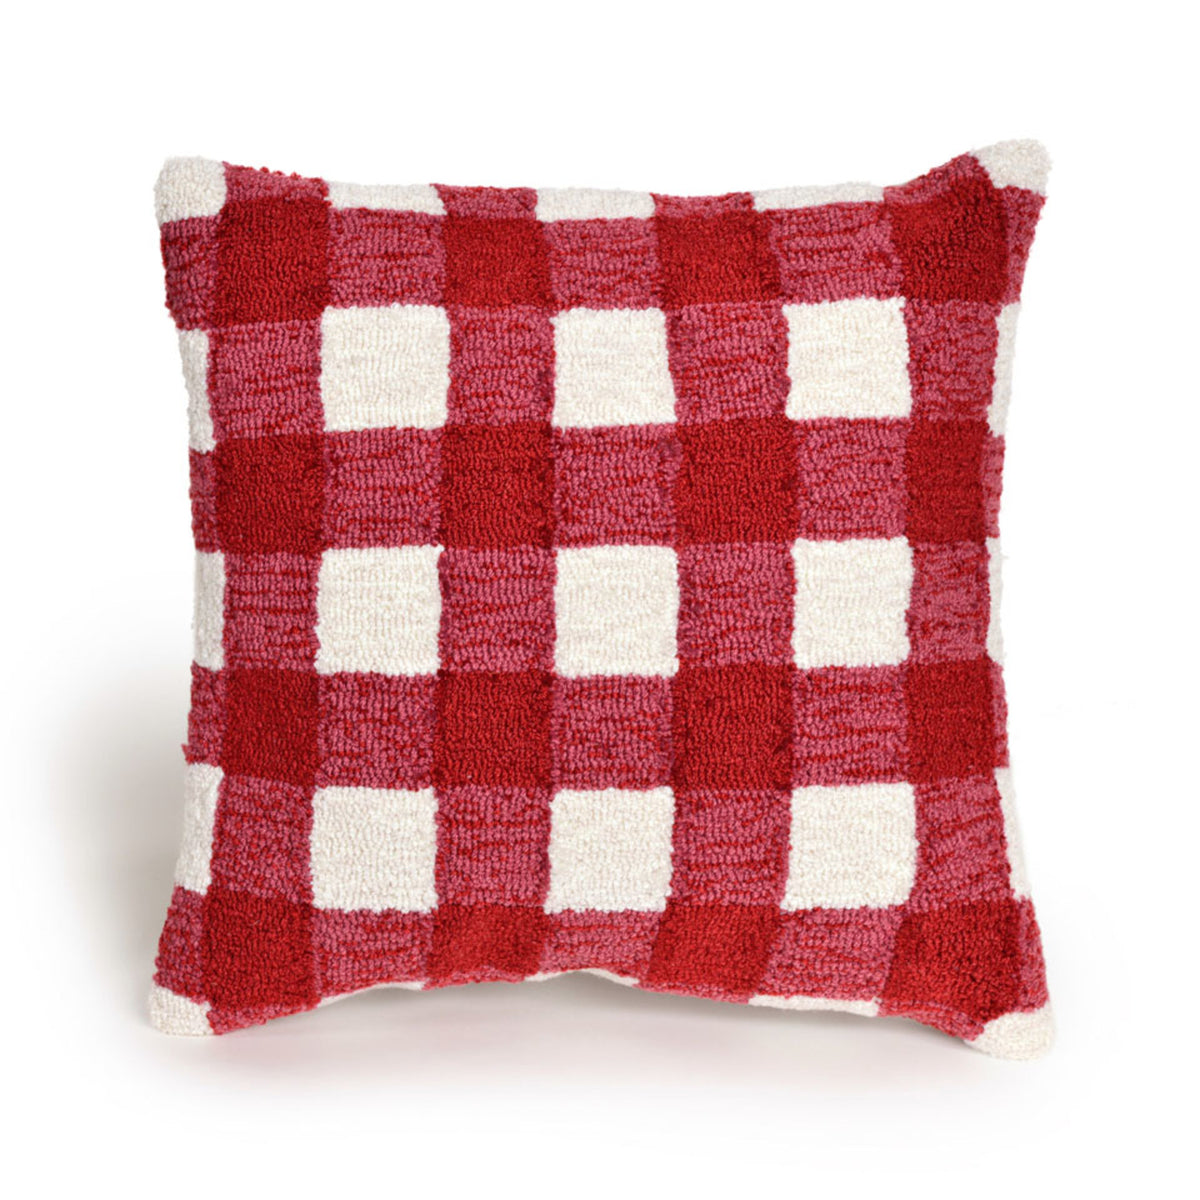 Frontporch Gingham Red Pillows